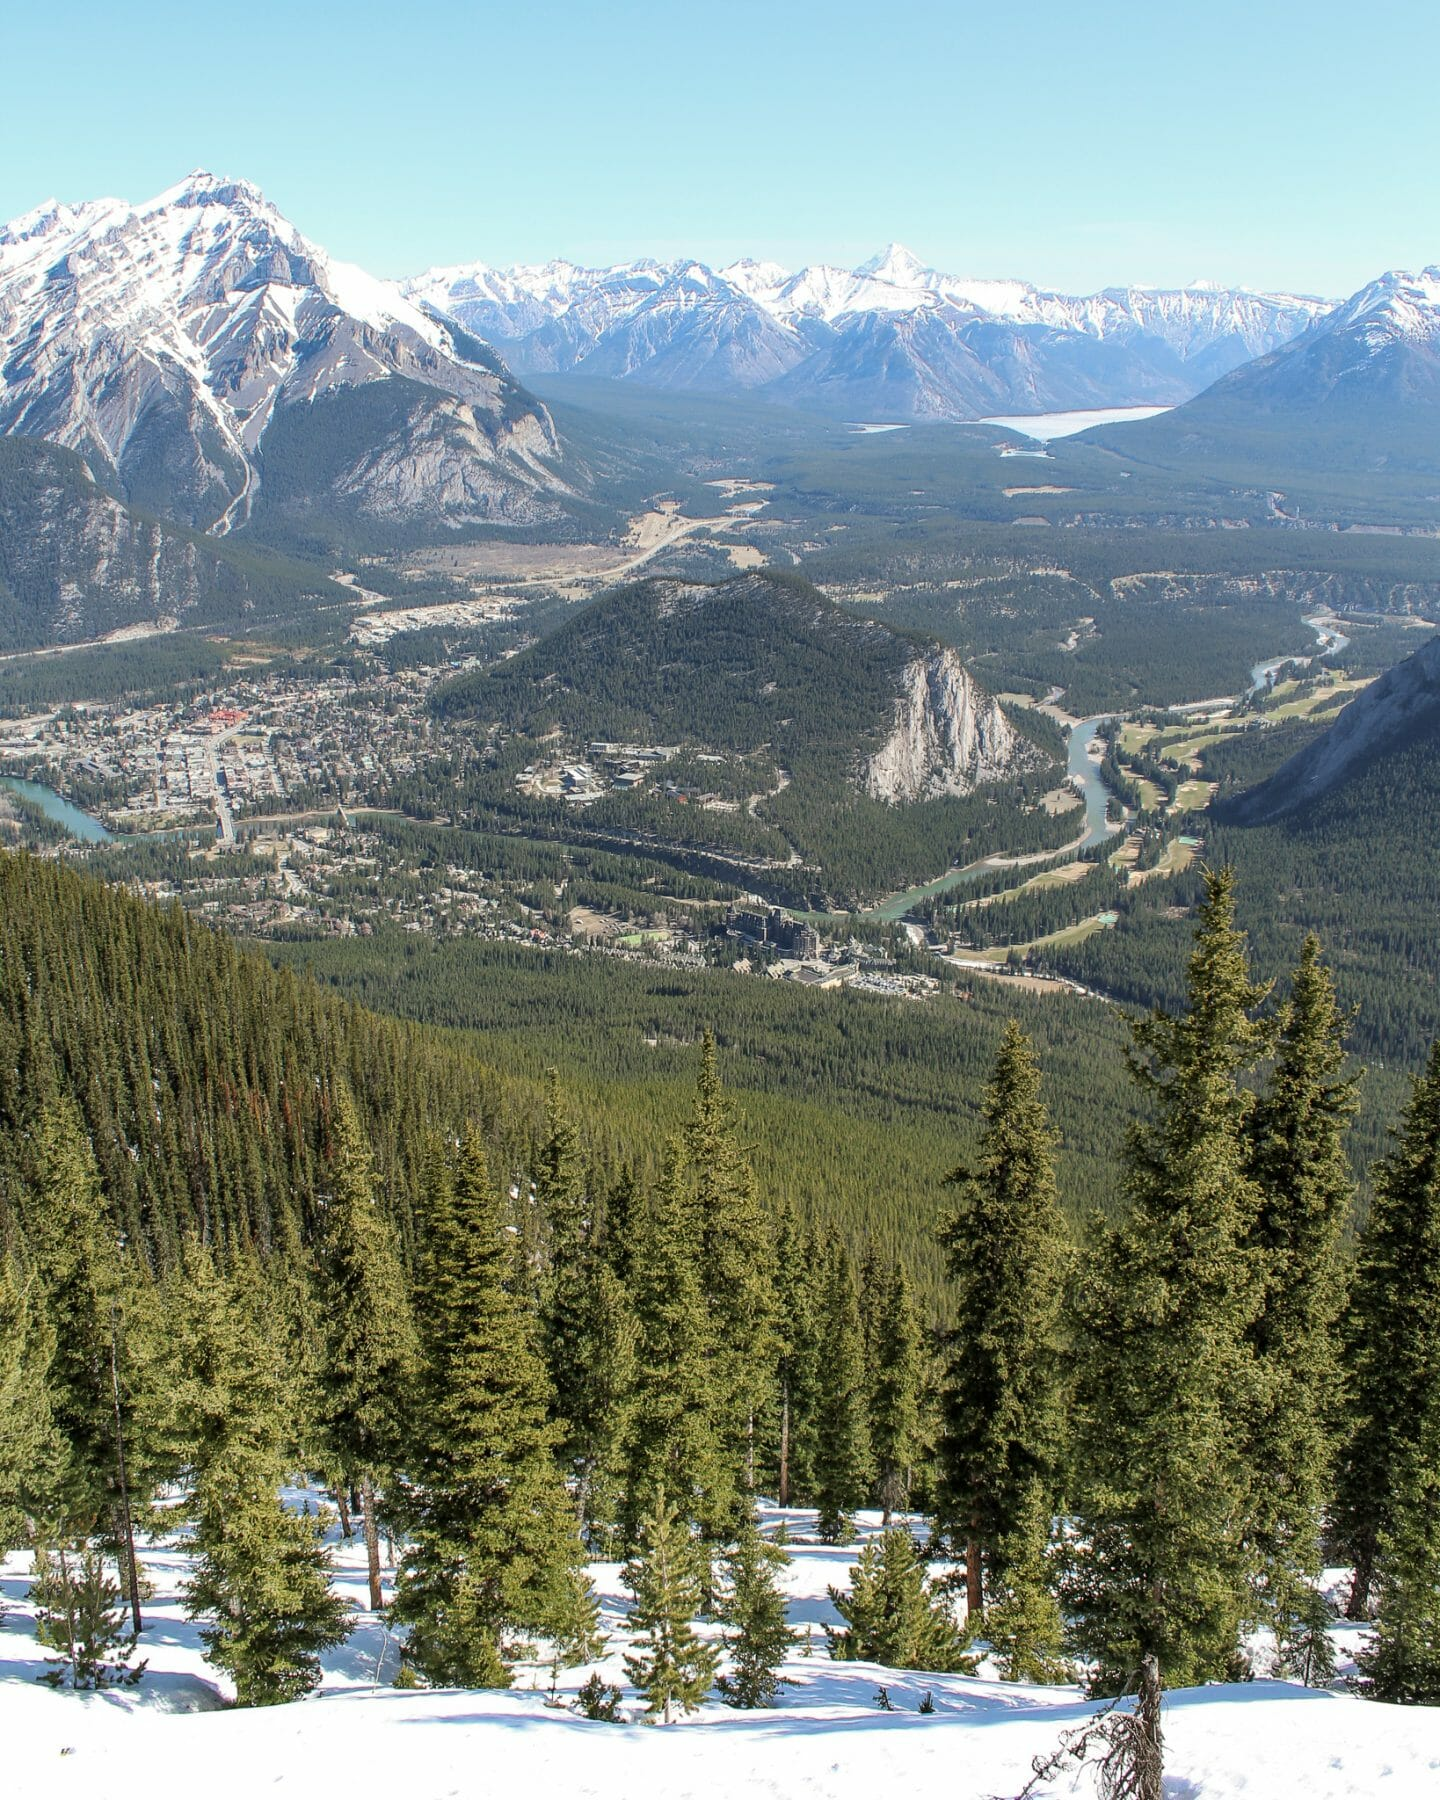 4 days in Banff - View from the Gondola